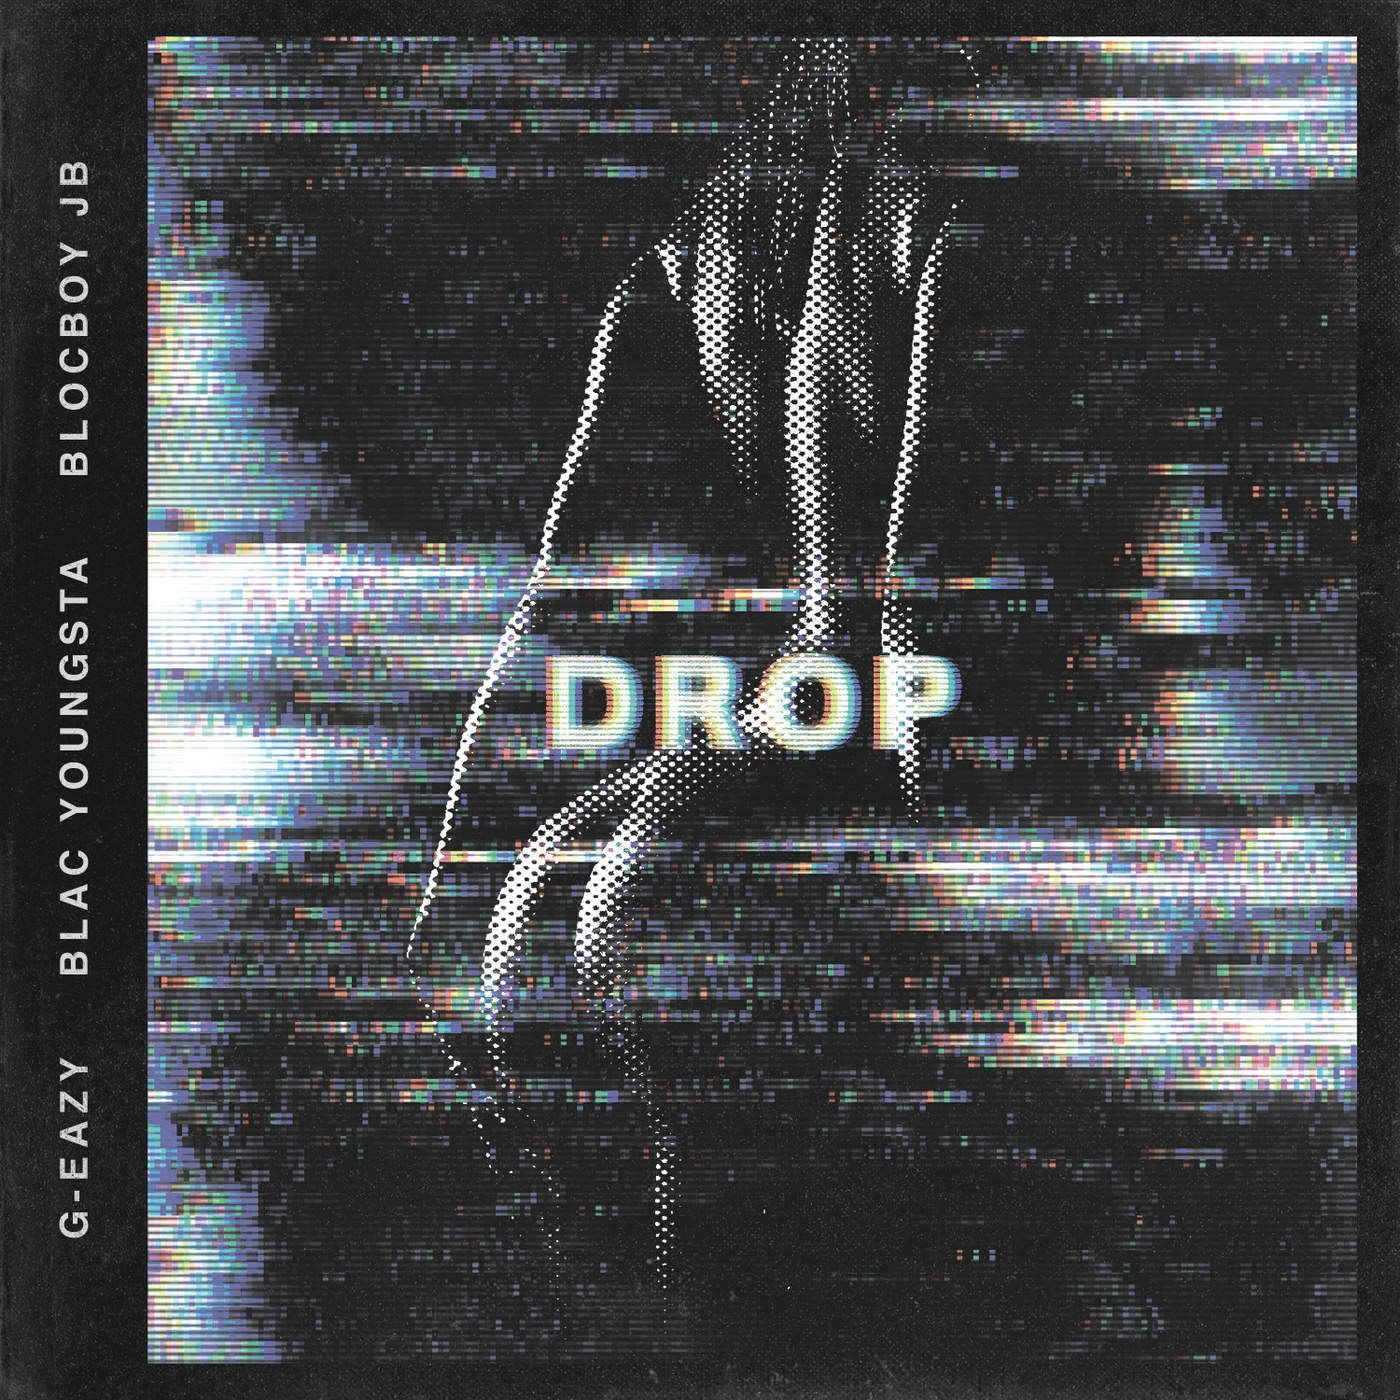 G-Eazy – Drop (feat. Blac Youngsta & BlocBoy JB) – Single [iTunes Plus M4A] | iplusall.4fullz.com